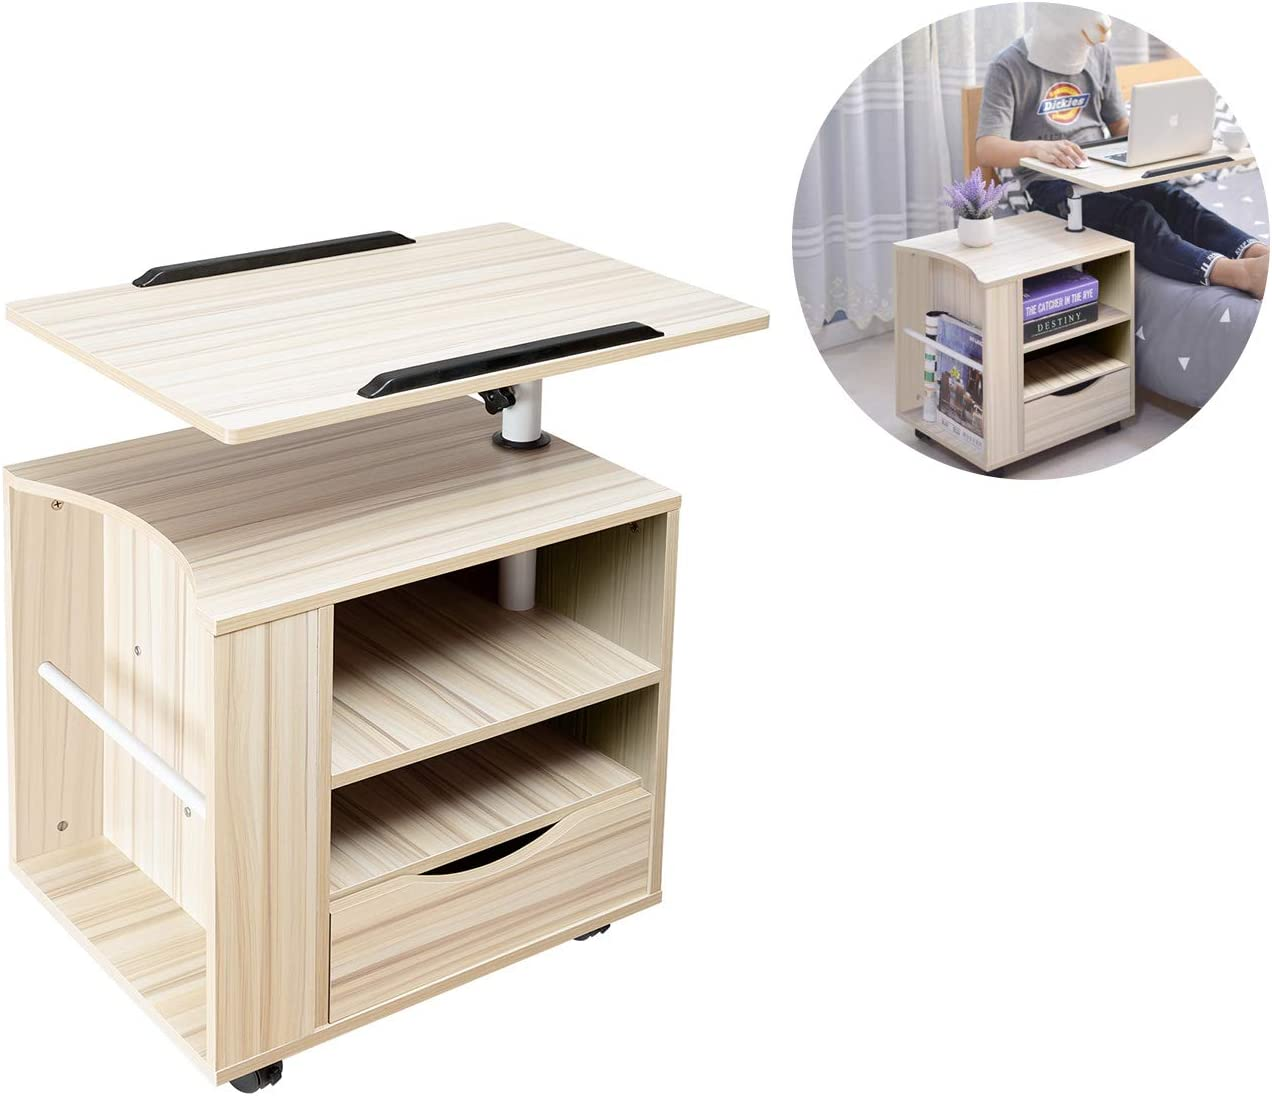 SIDUCAL Multifunctional Bedside Table Height Adjustable & Swiel Wooden Nightstand with Drawers, Rolling Laptop Desk Computer Table, Beige (Right Side)